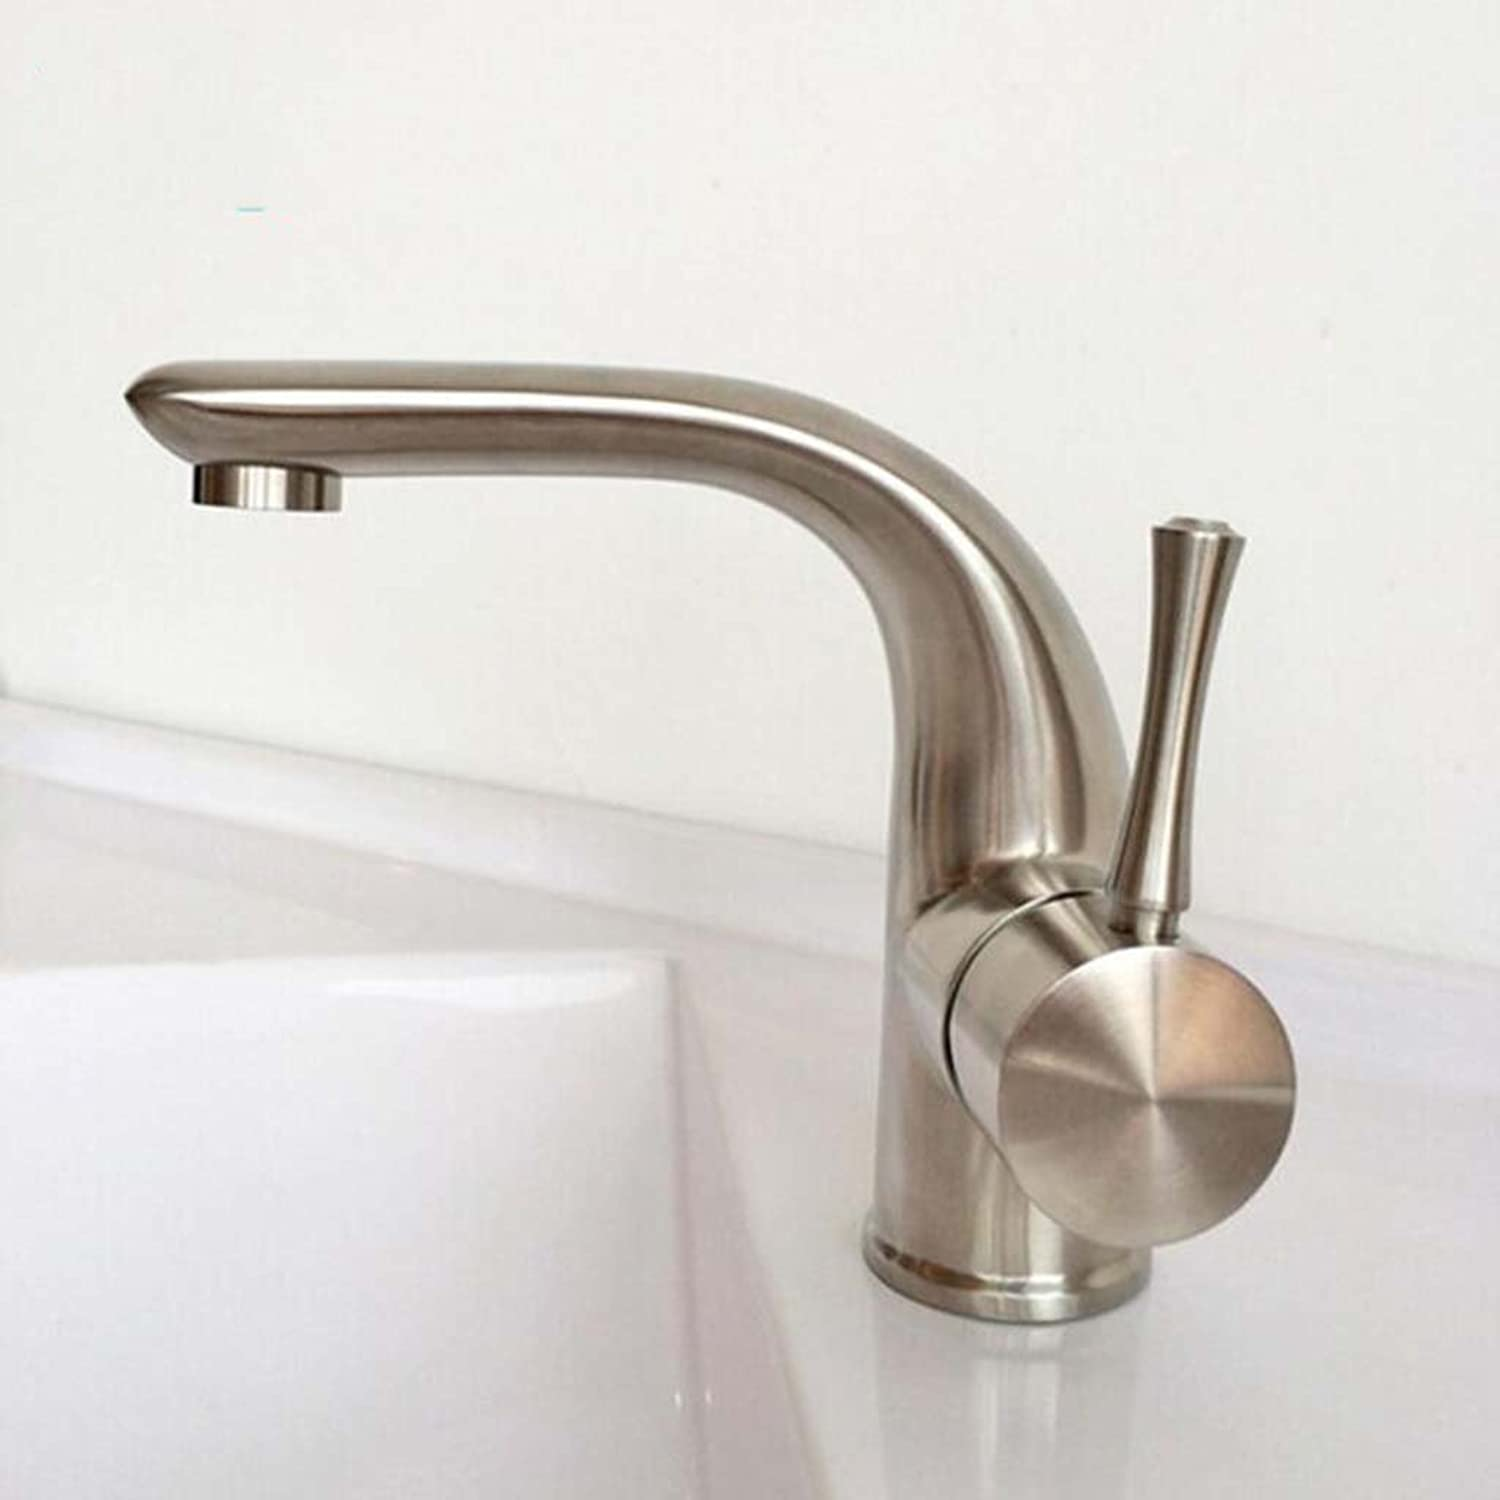 DDHZTA High-Grade Basin Mixer Faucet Sitting Stainless Steel 304 Basin Wash Basin Hot And Cold Faucet Brushed Household Bathroom Ceramic Valve Core